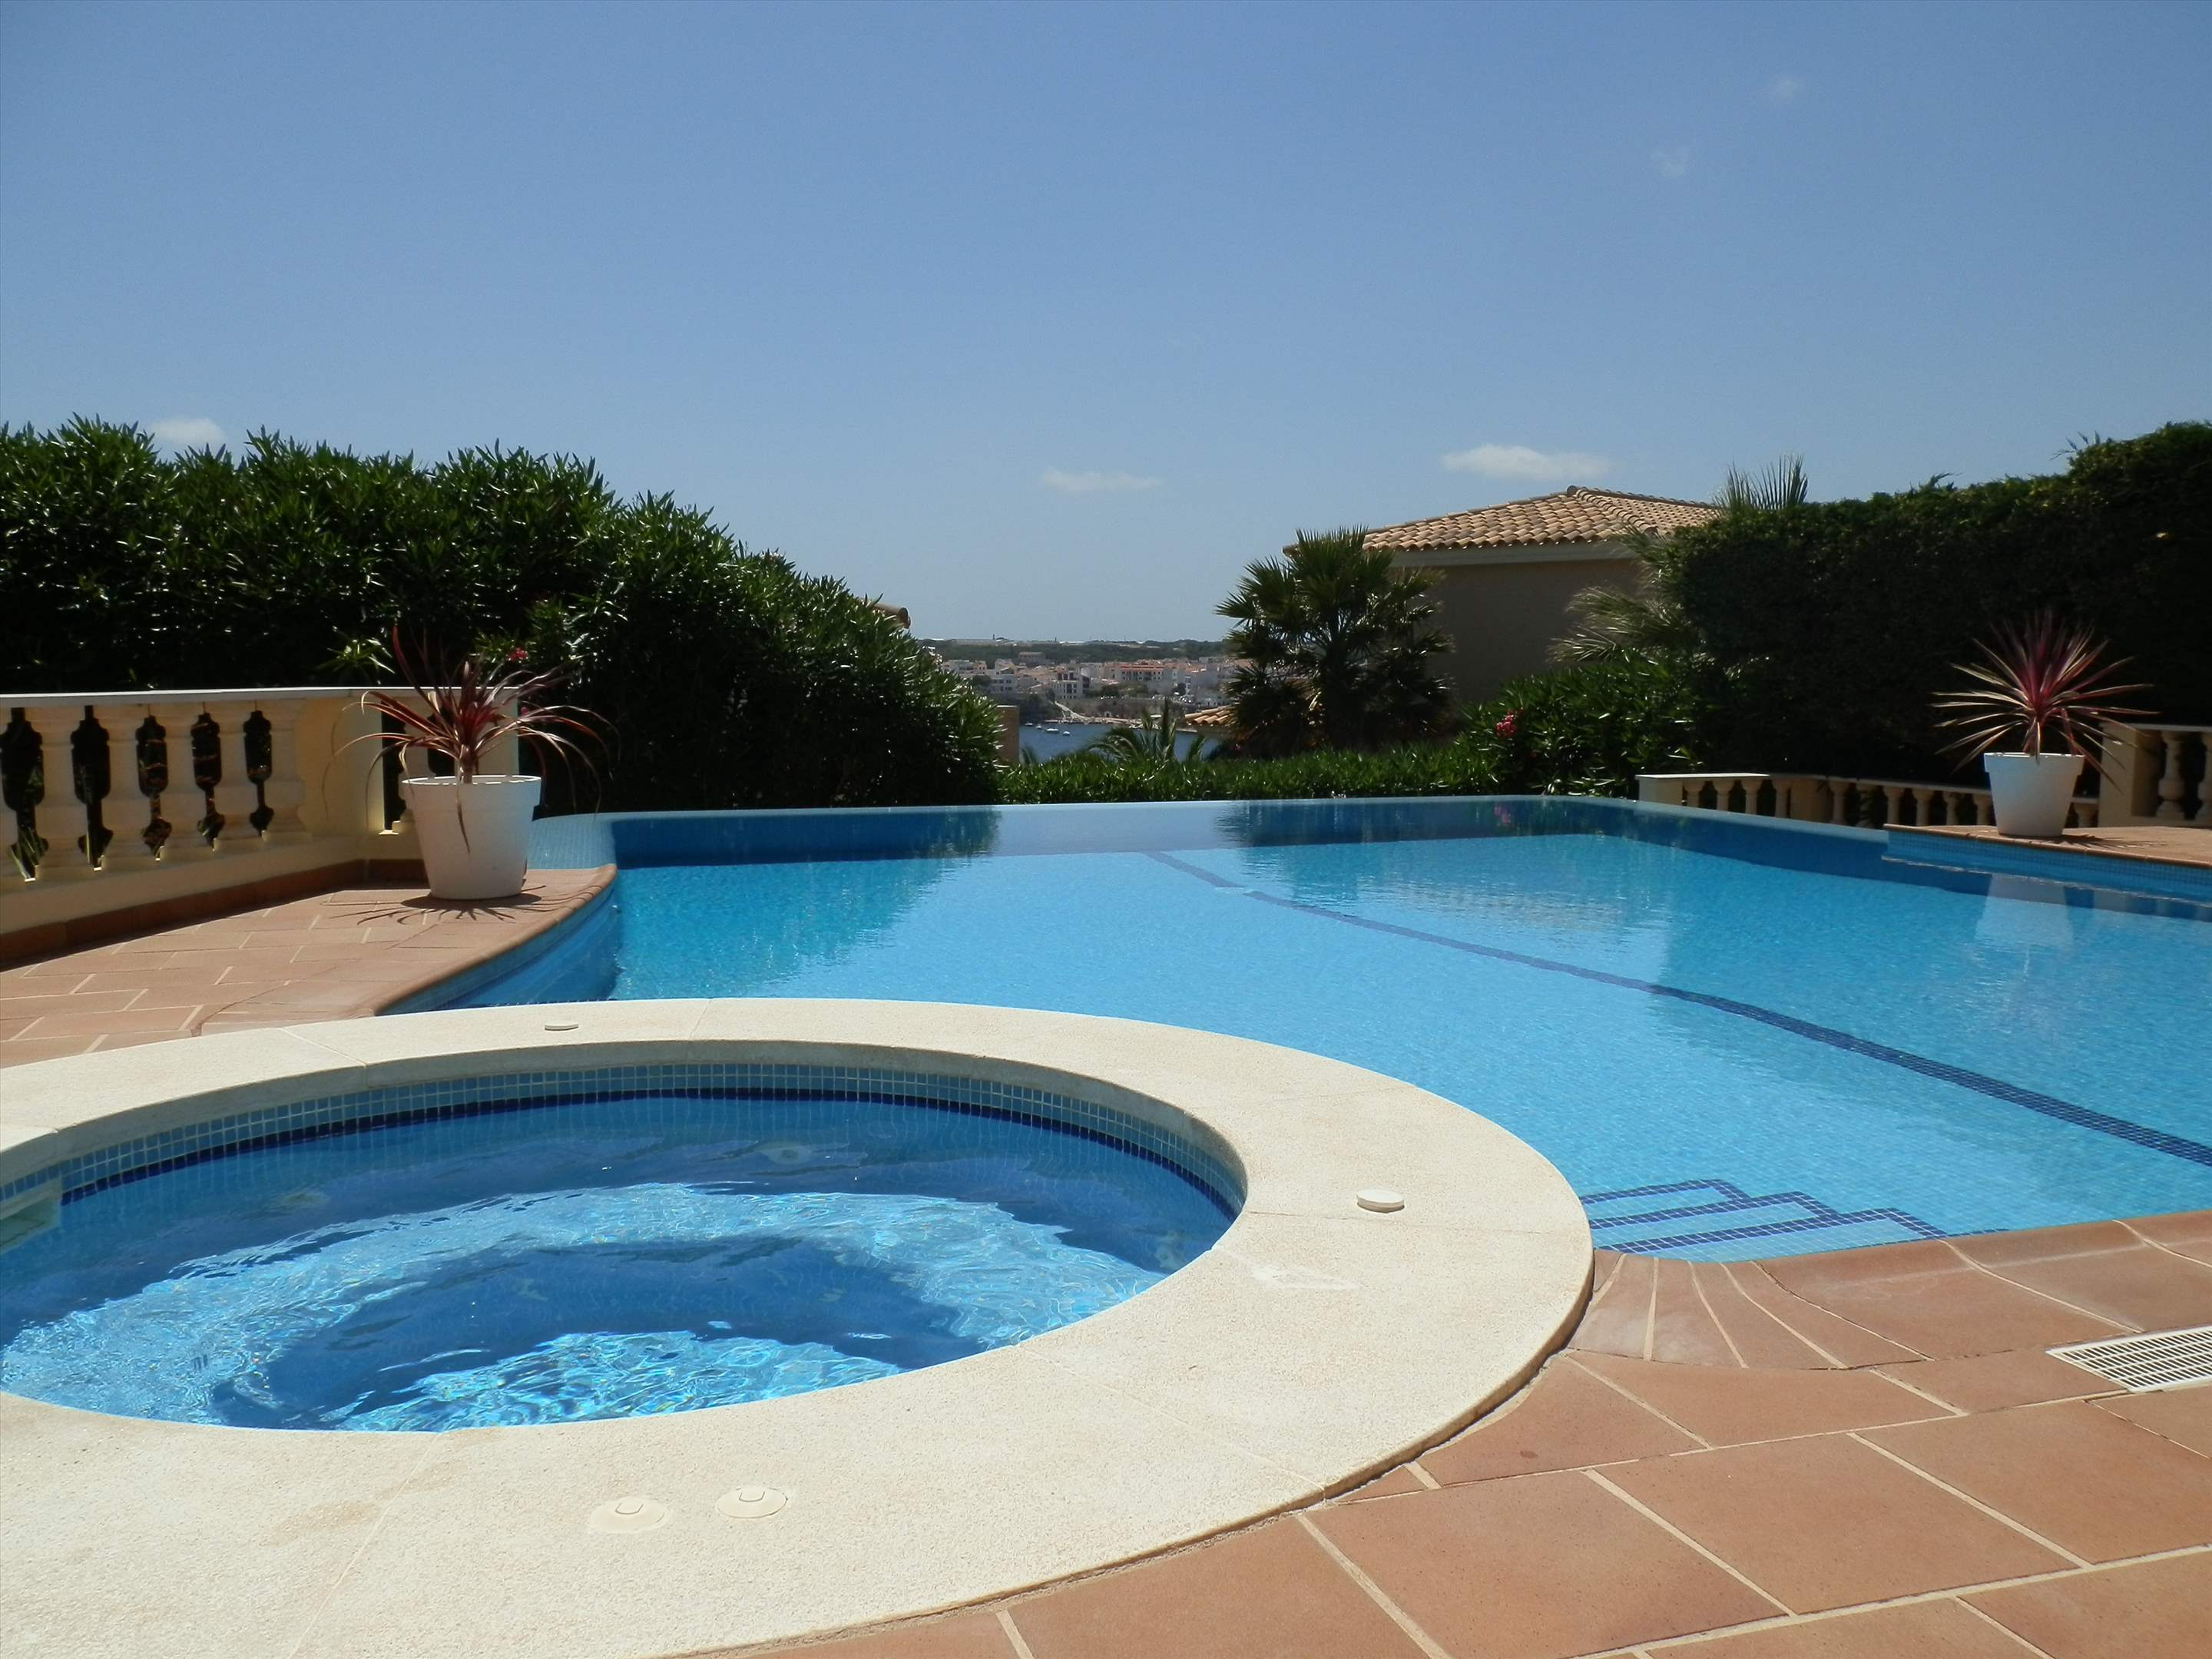 Son De Mar, 5 bedroom villa in Mahon, San Luis & South East, Menorca